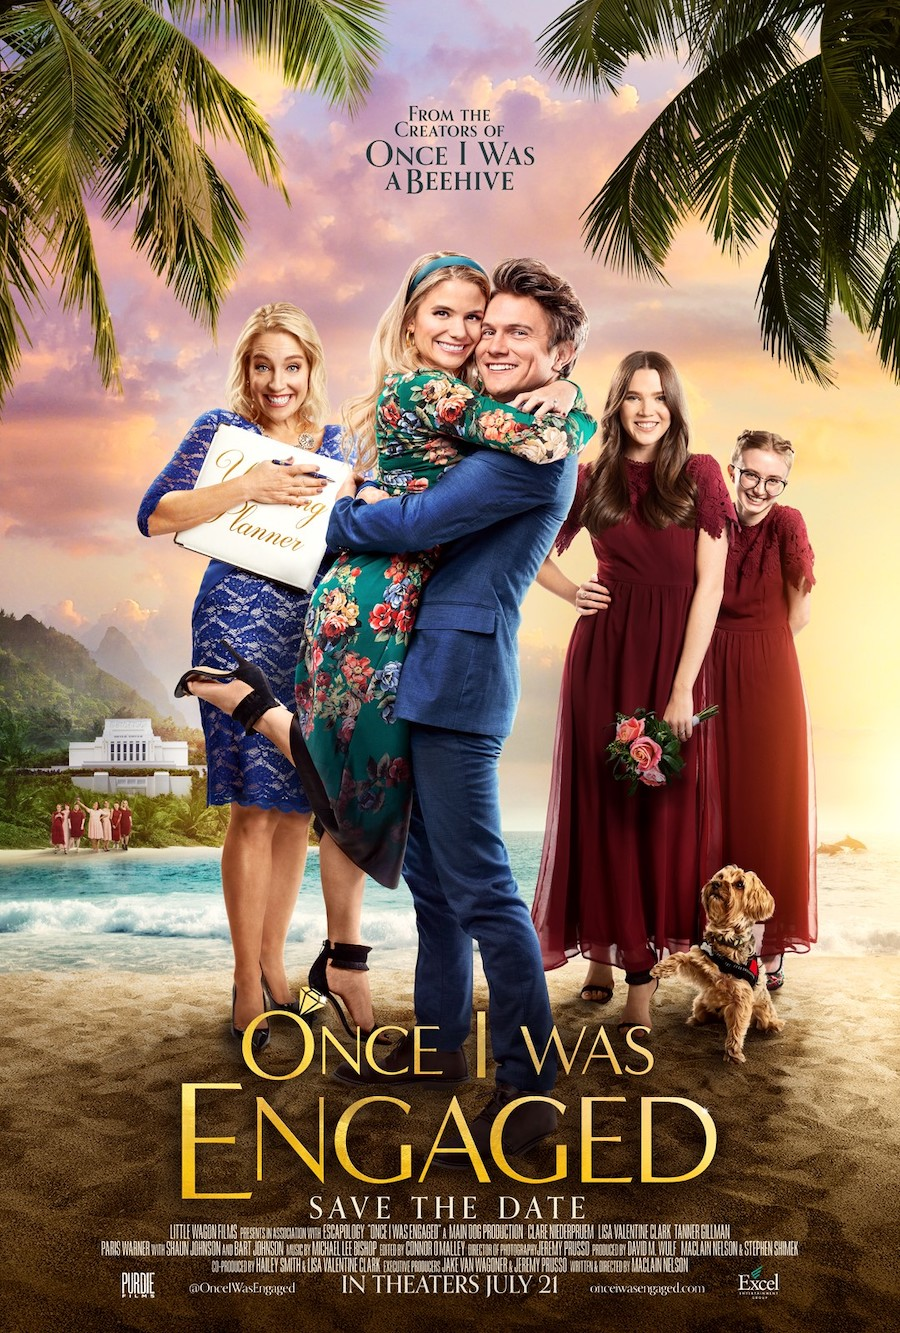 Once I was Engaged poster